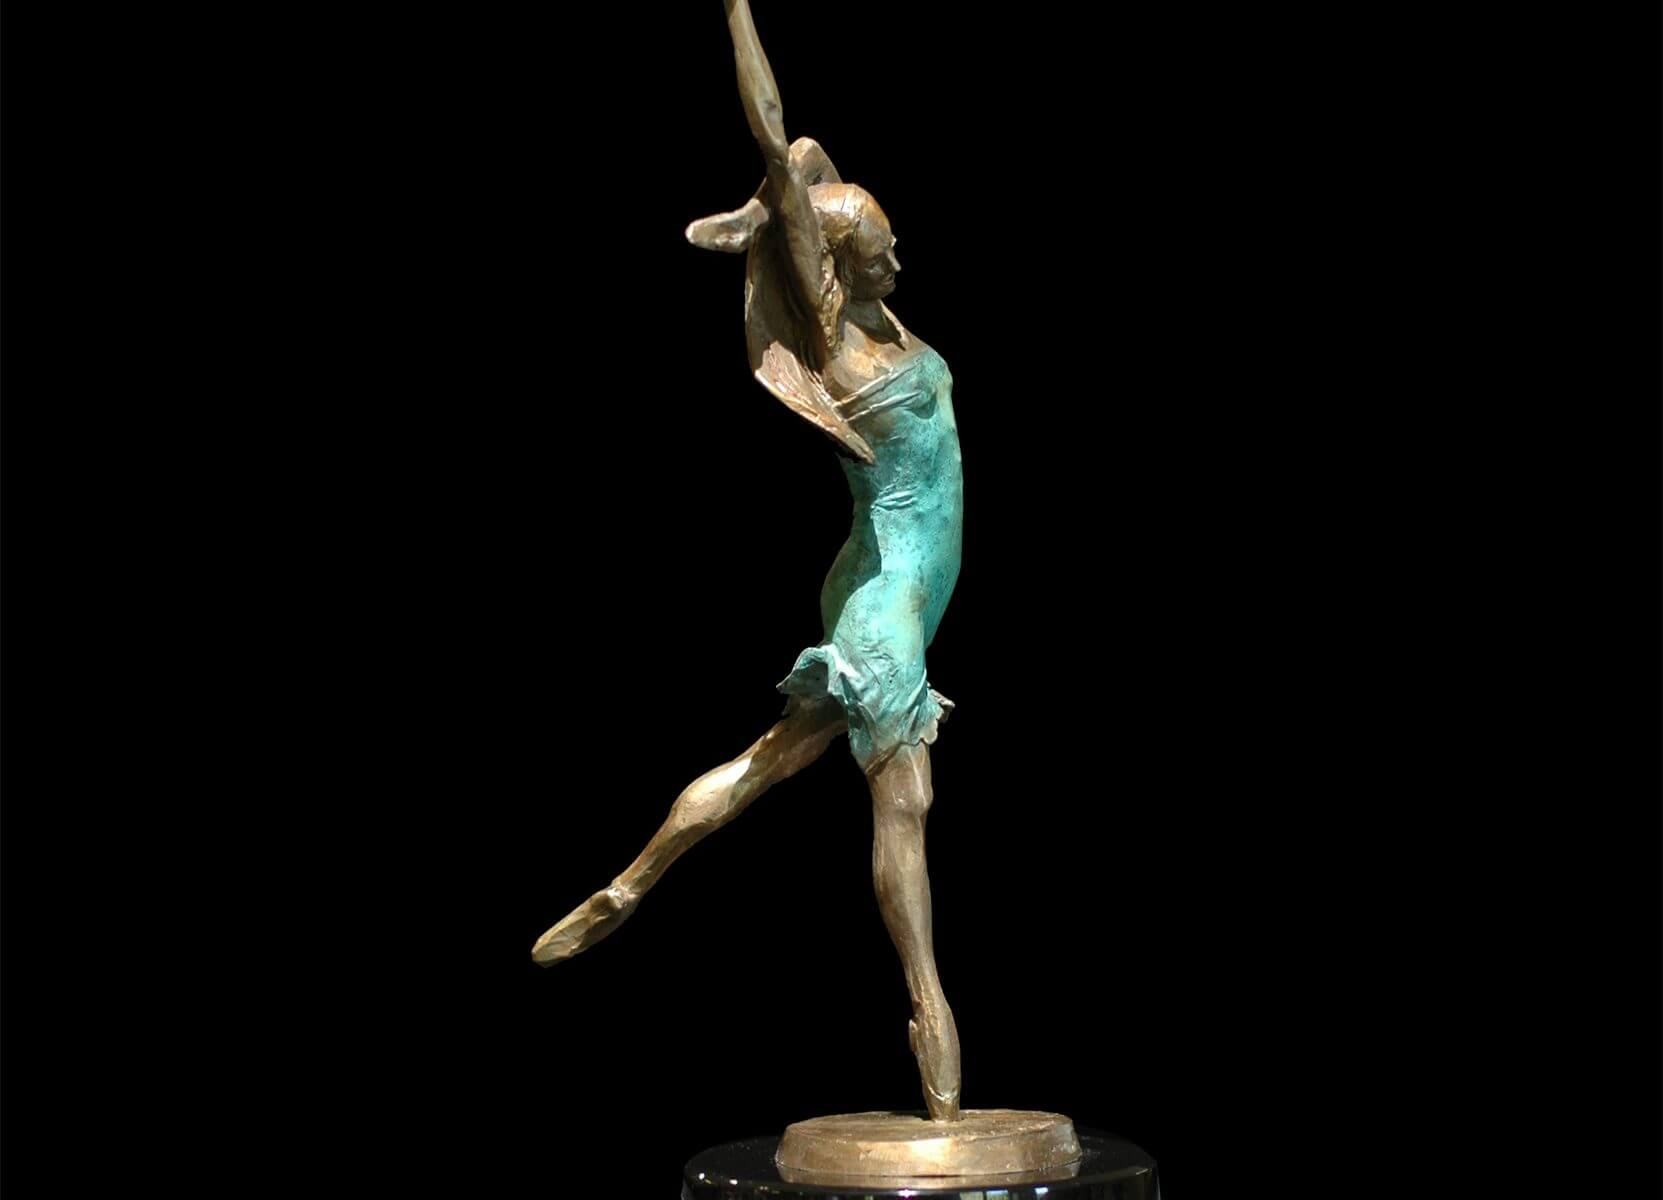 Dance with Me a small bronze female ballet dance sculpture by Andrew DeVries